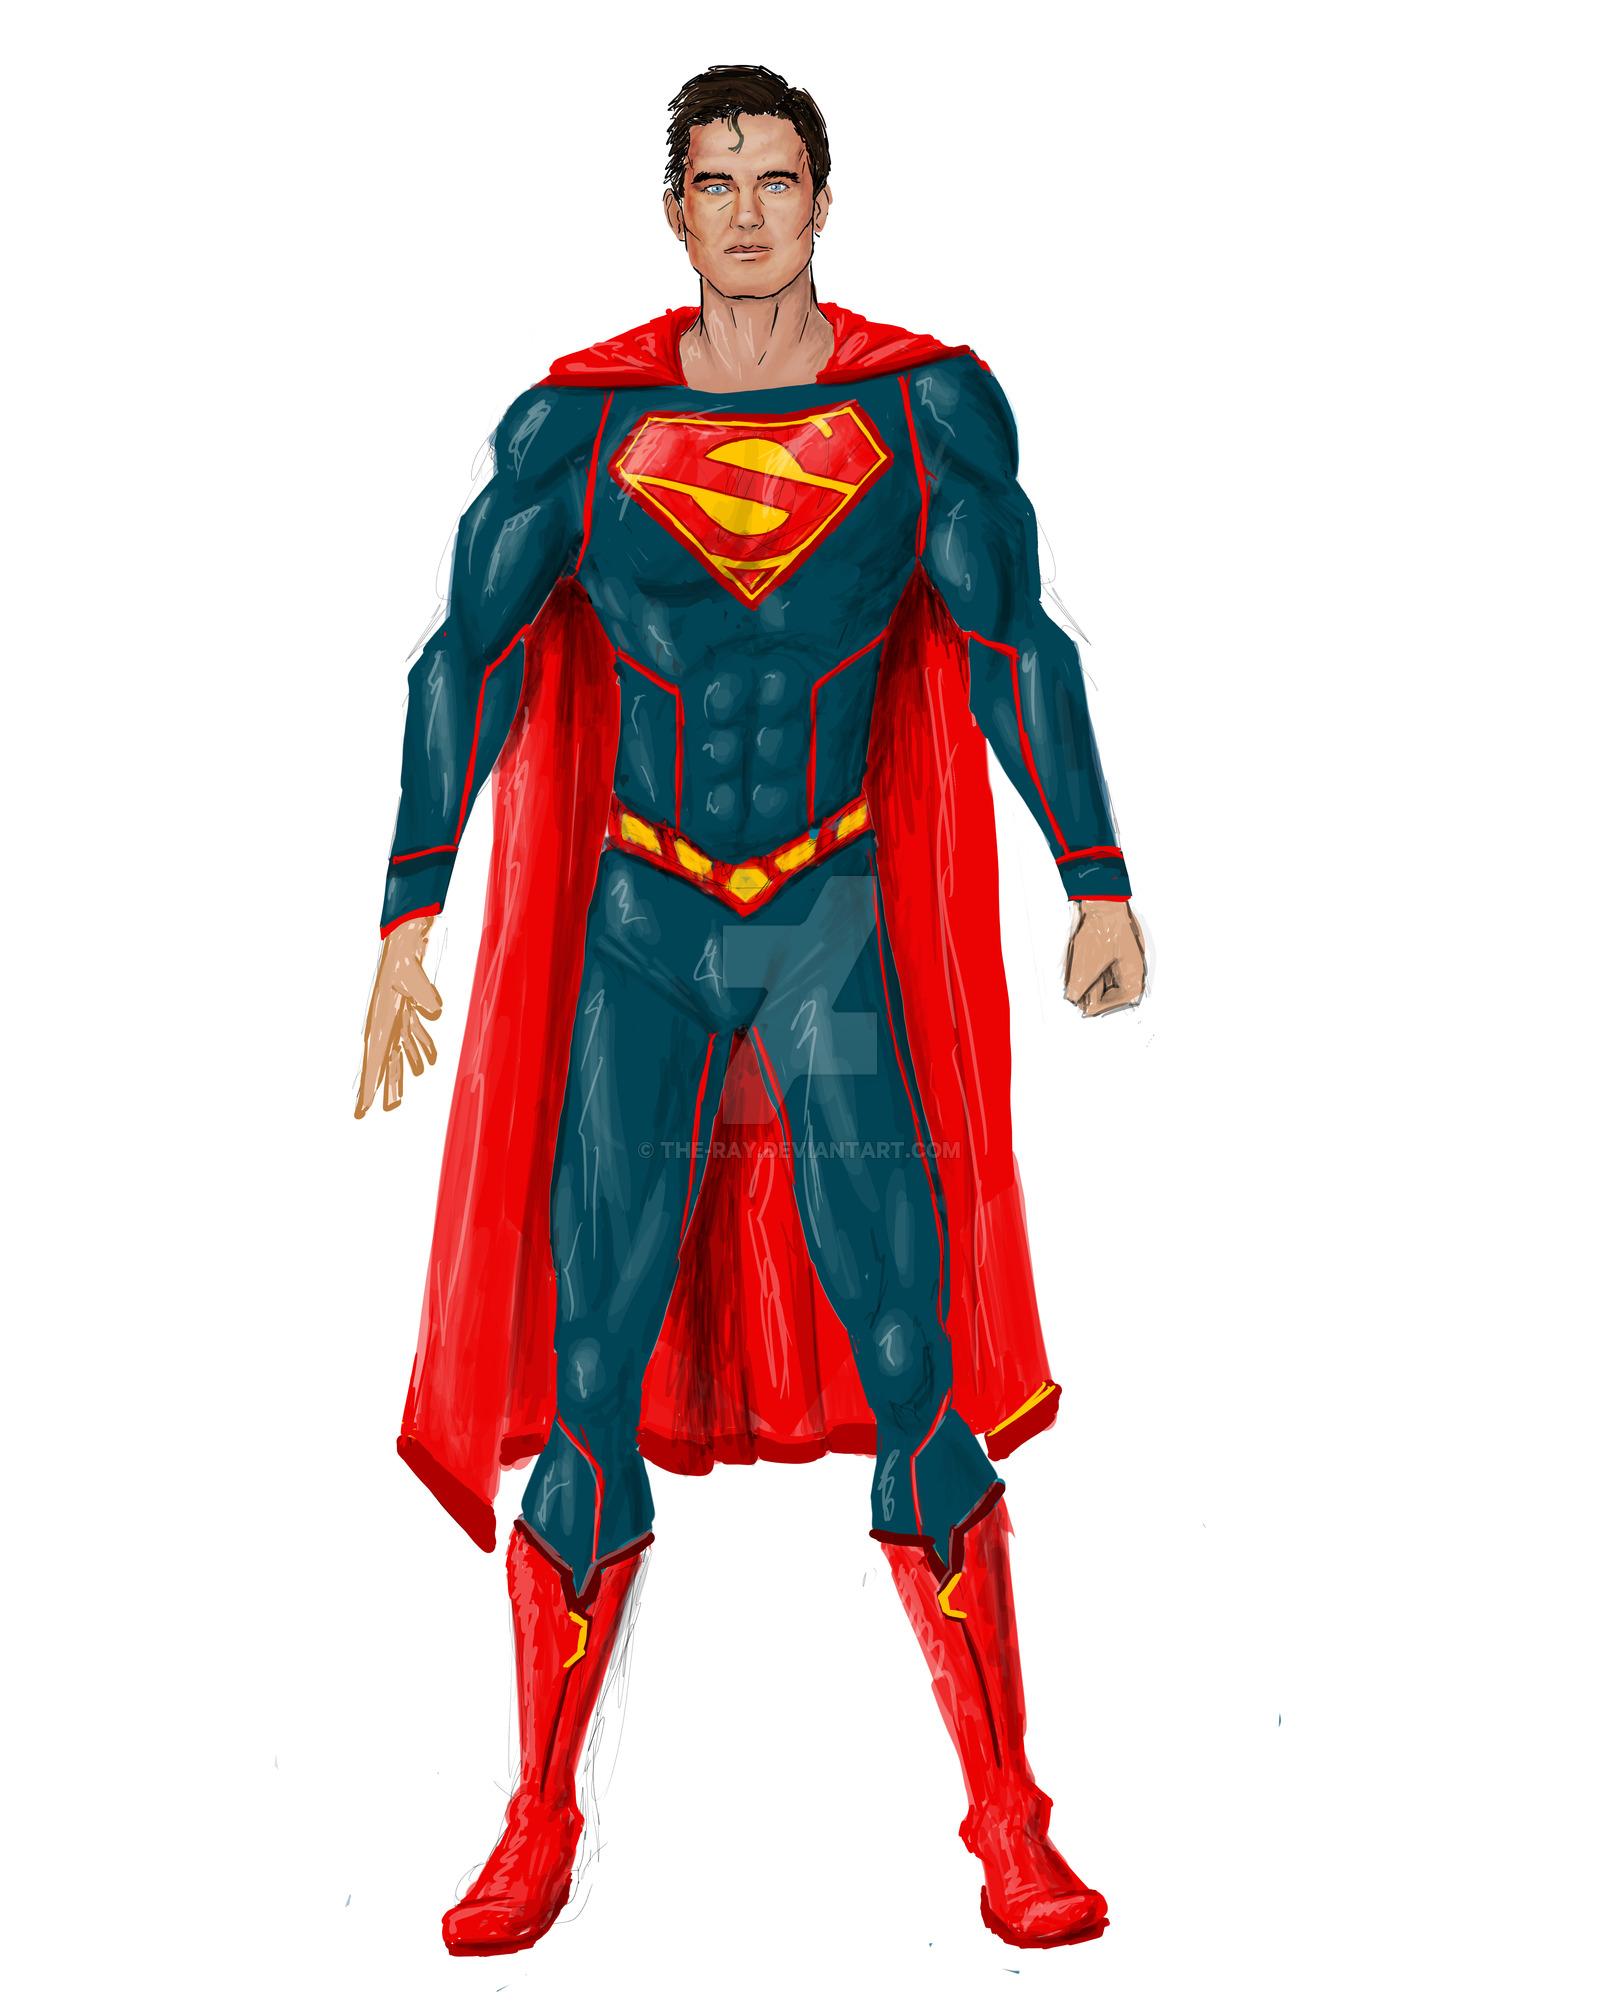 superman_redesign_by_the_ray-d8w6mte.jpg